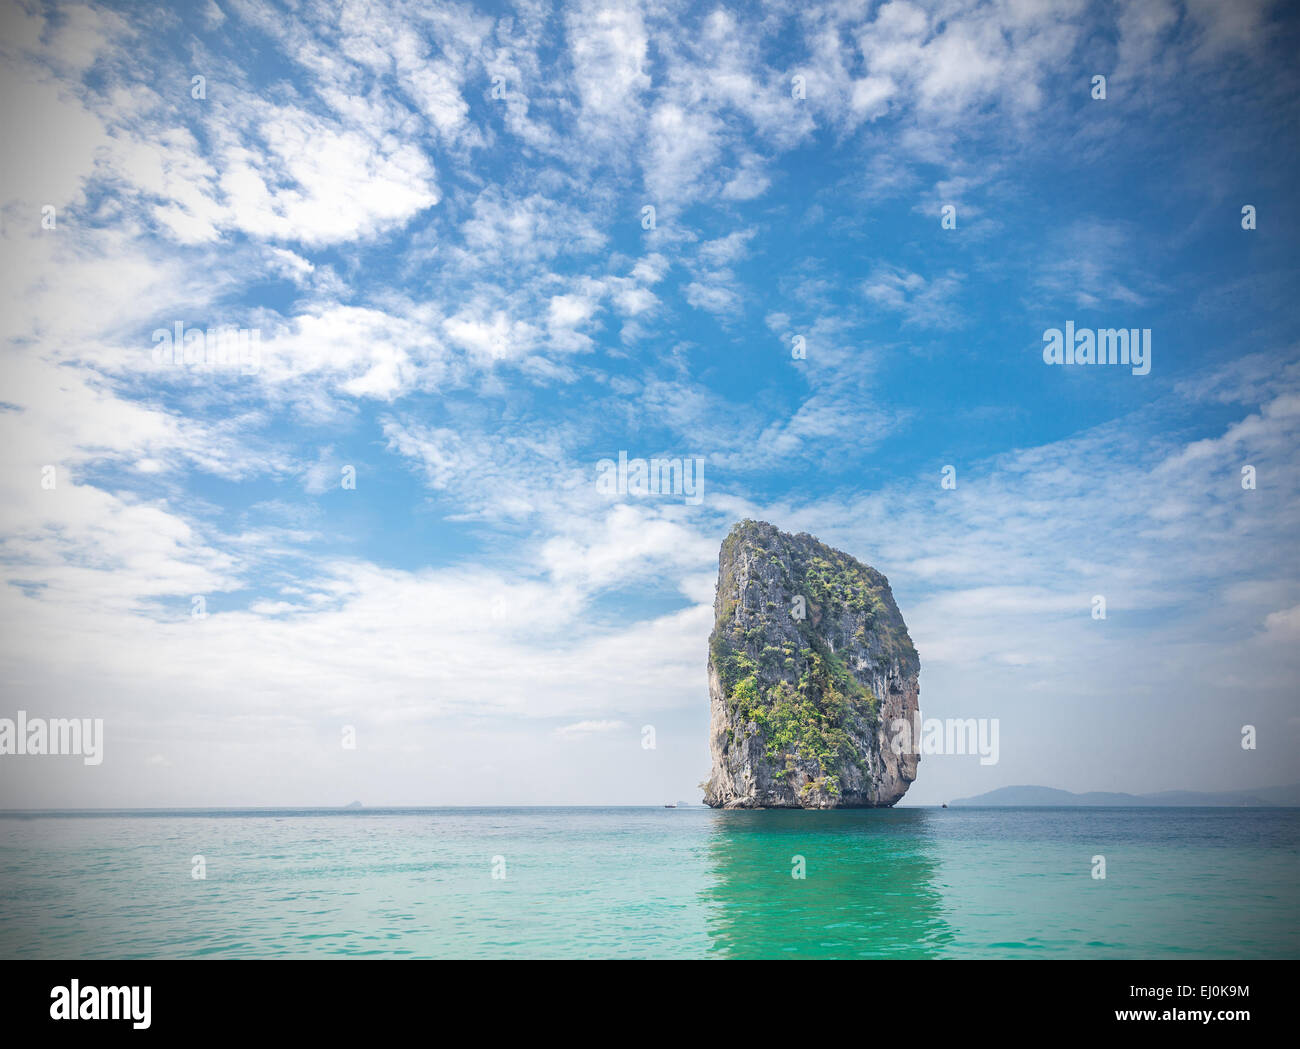 Tropical island located in Krabi province, Thailand. Vignette effect applied. - Stock Image